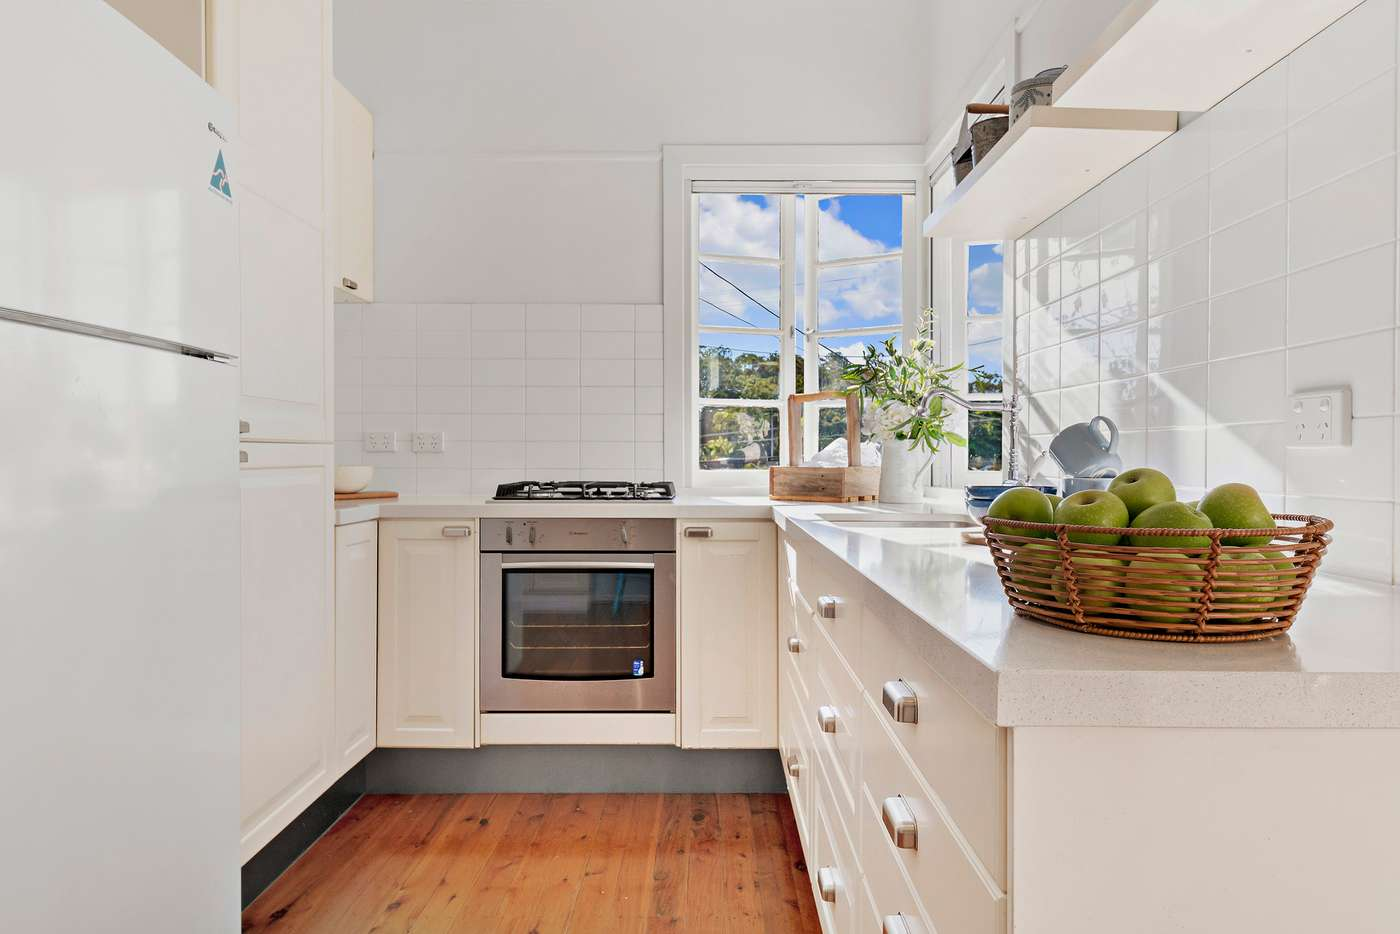 Fifth view of Homely house listing, 87 Waminda Street, Morningside QLD 4170